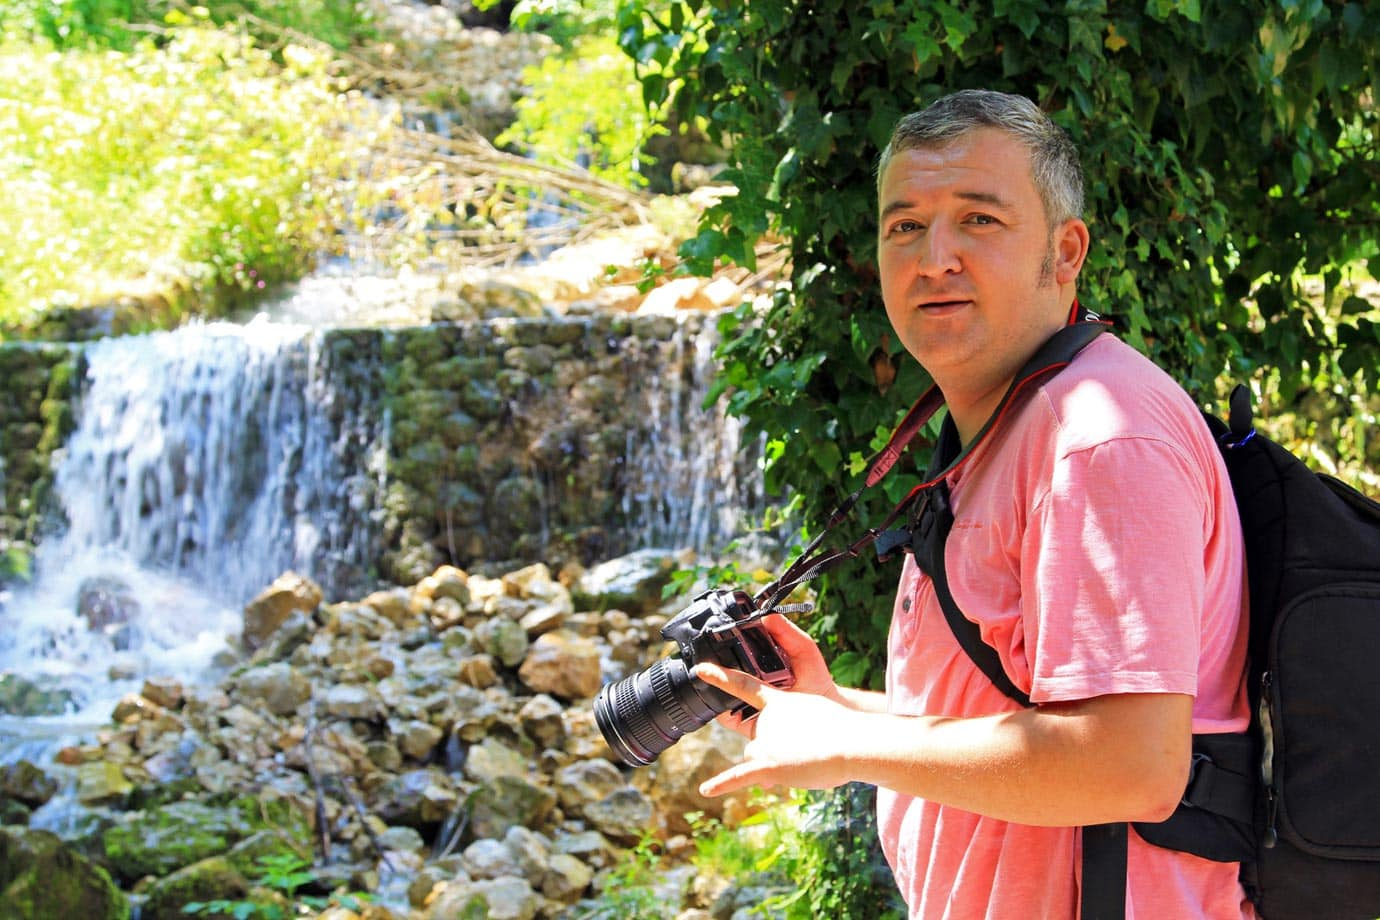 Nenad was the first person to pick me up, and he was also an avid photographer